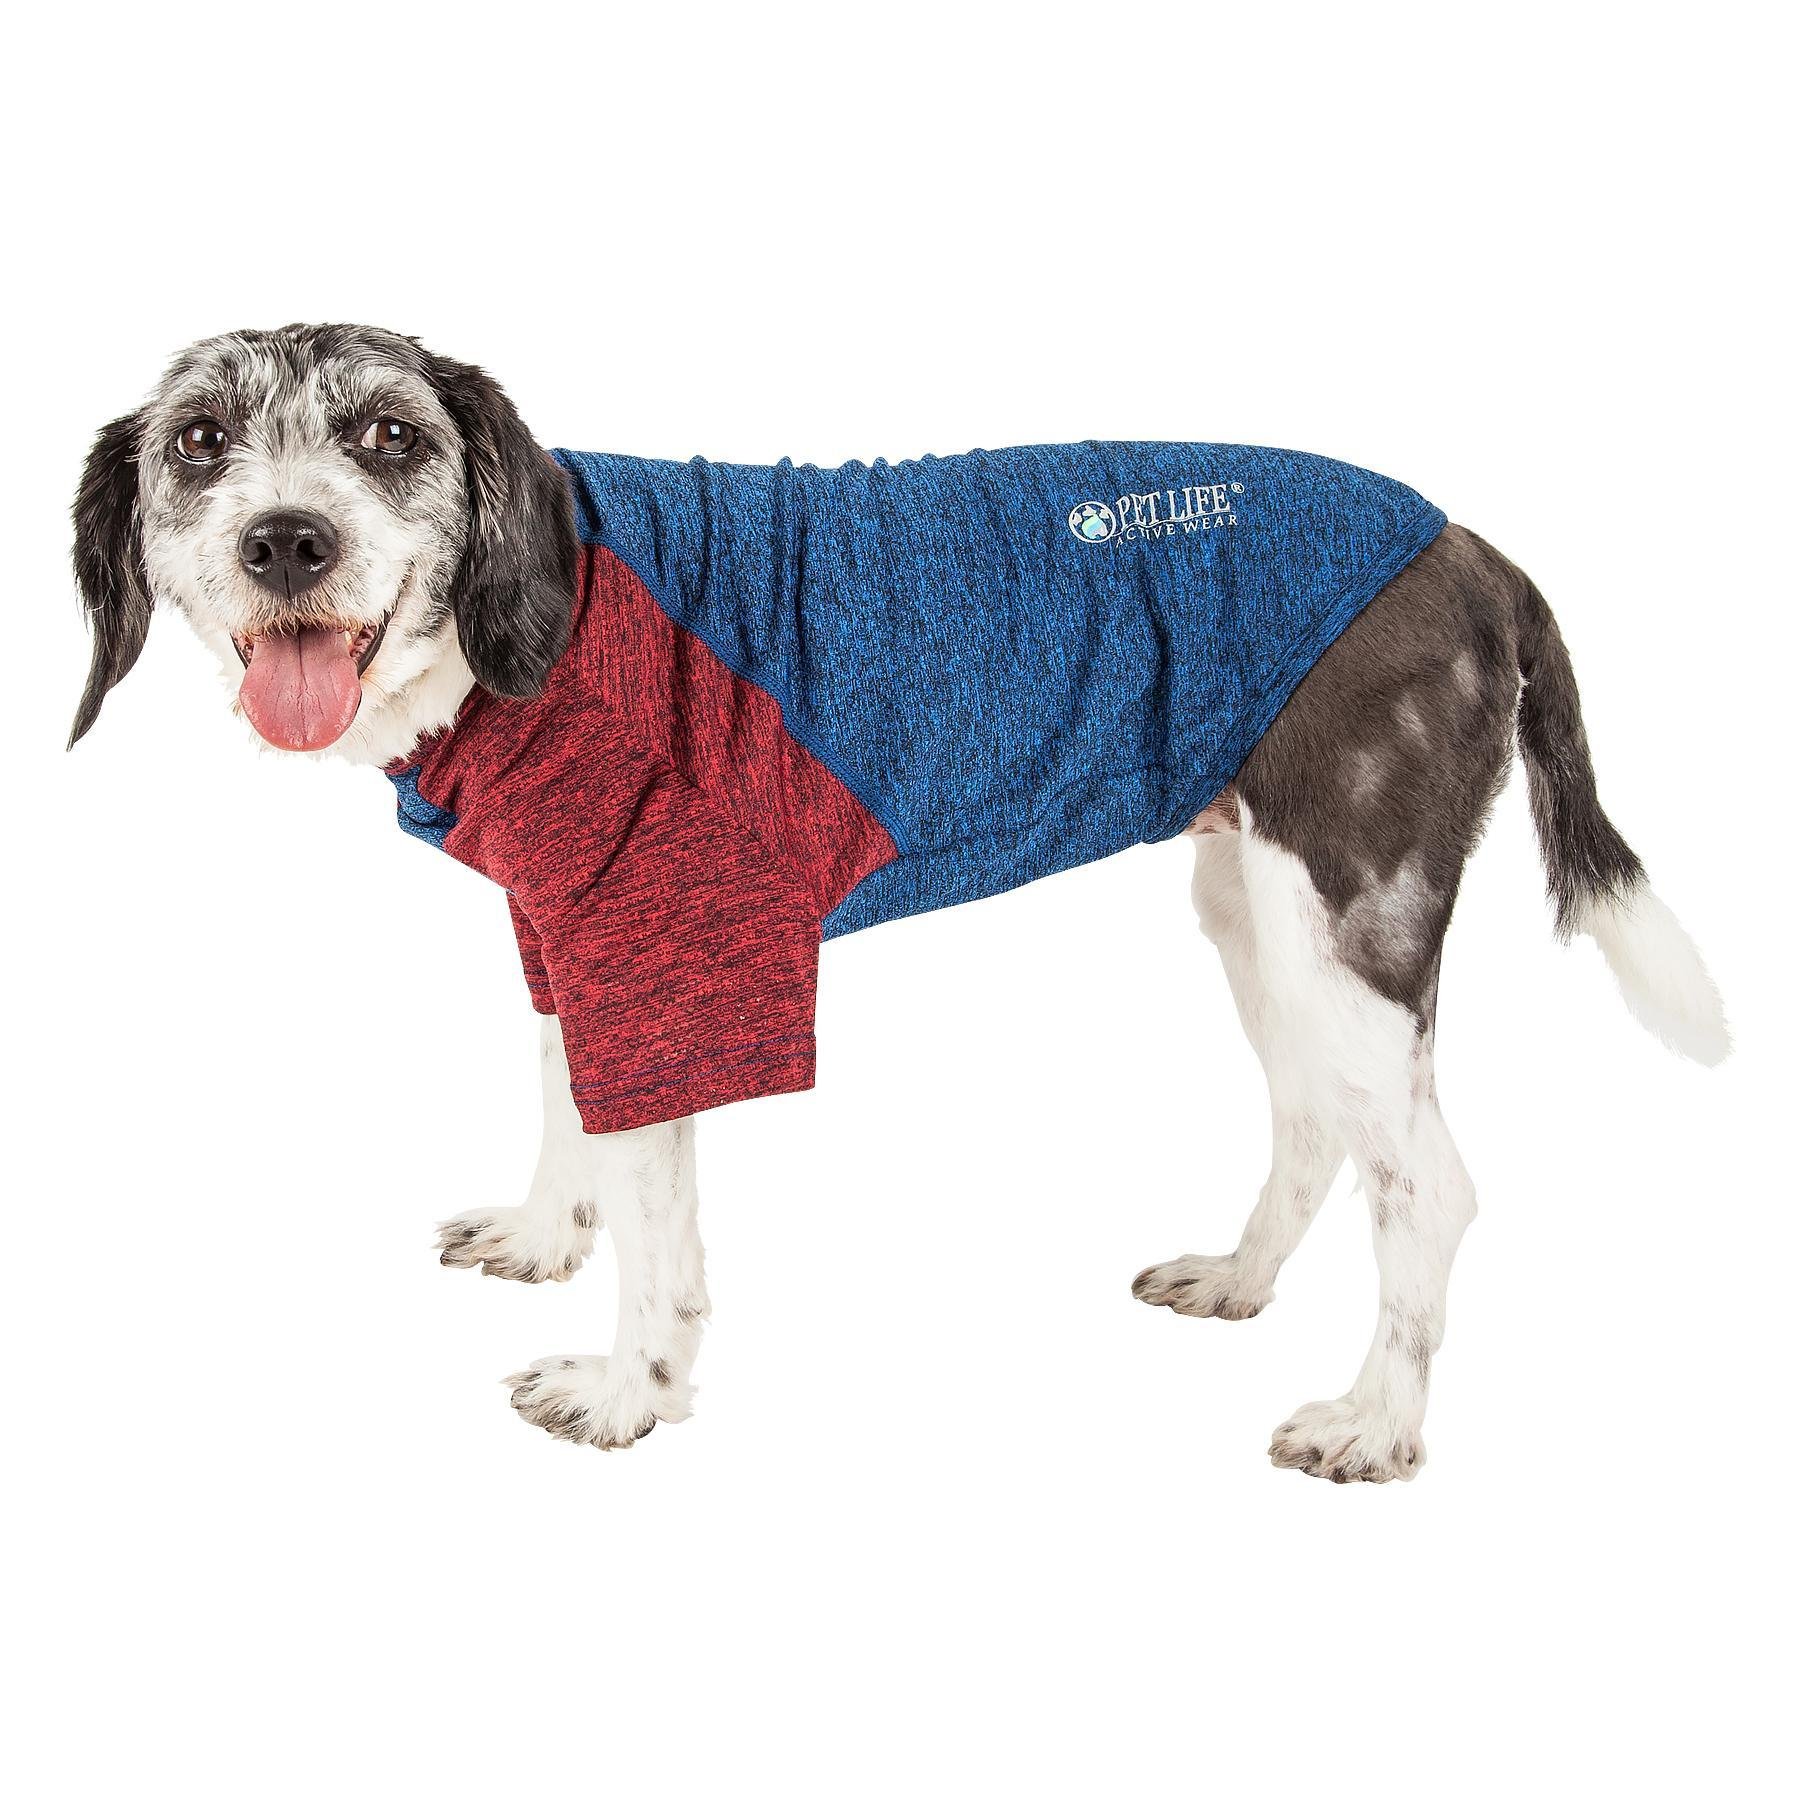 Pet Life ACTIVE 'Hybreed' Two-Toned Performance Dog T-Shirt - Blue and Maroon